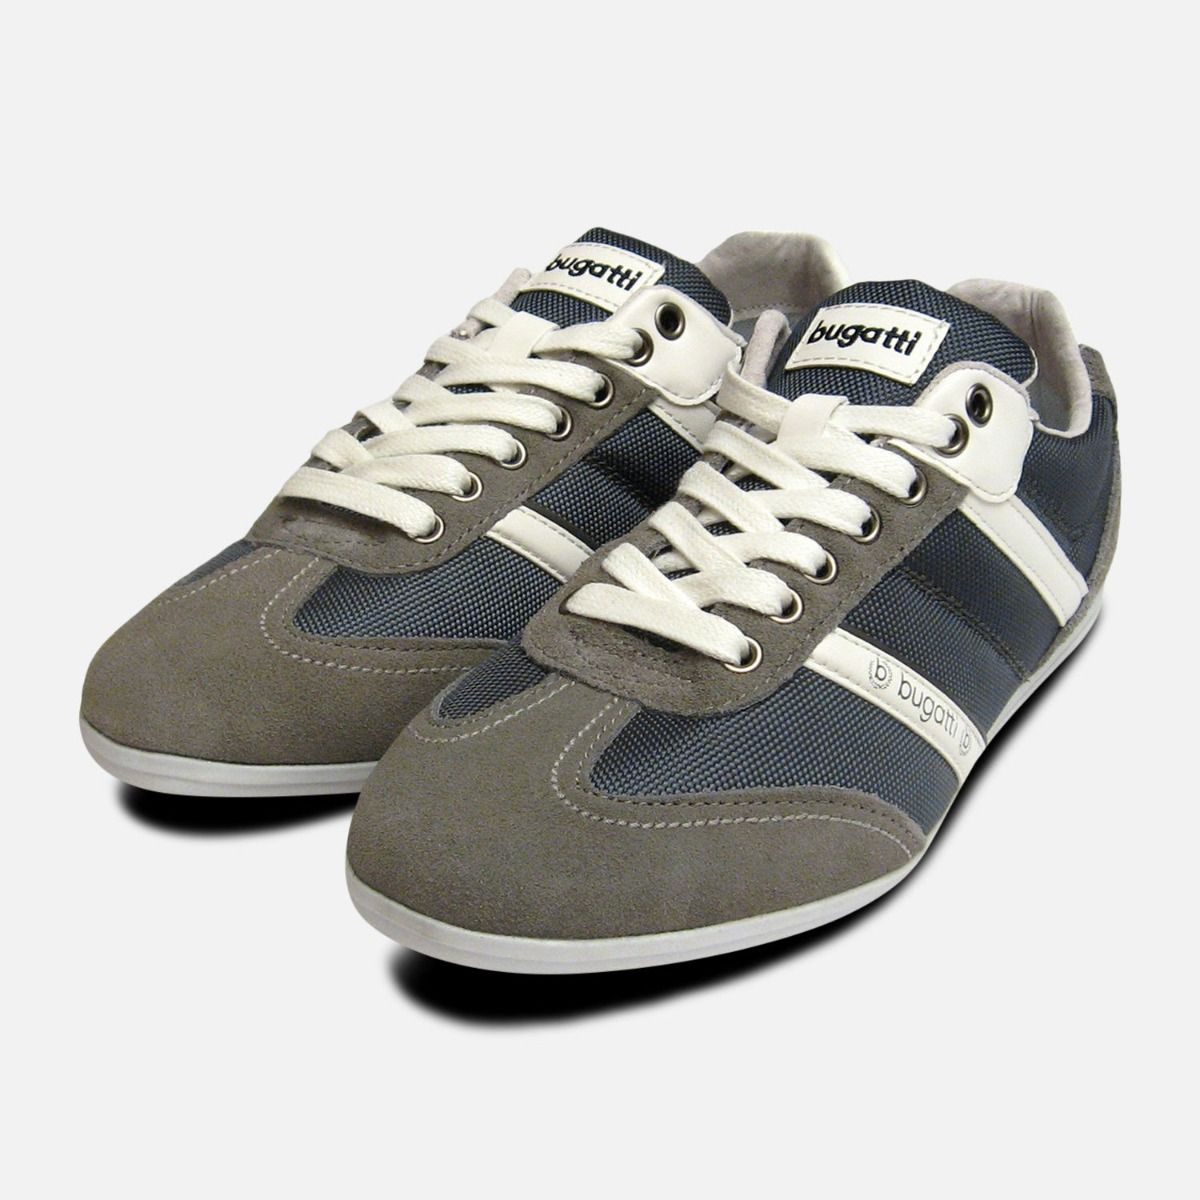 0d52588236597c Mens Bugatti Sneakers in Grey Suede Leather Designer Trainers